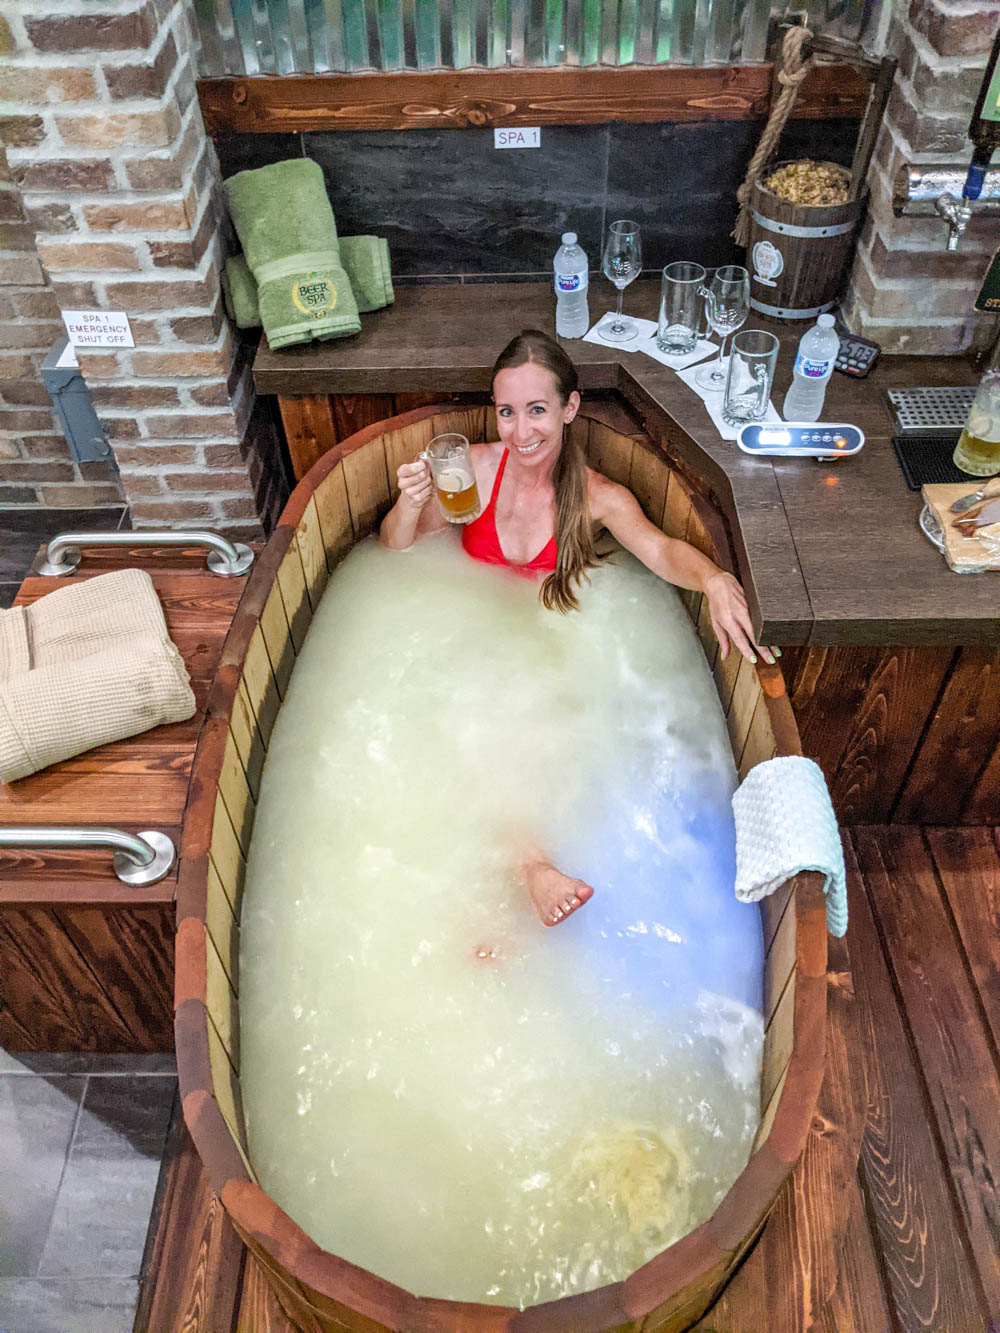 Orlando beer spa | The Best Things to Do in Orlando Besides Theme Parks: Orlando, Florida for adults